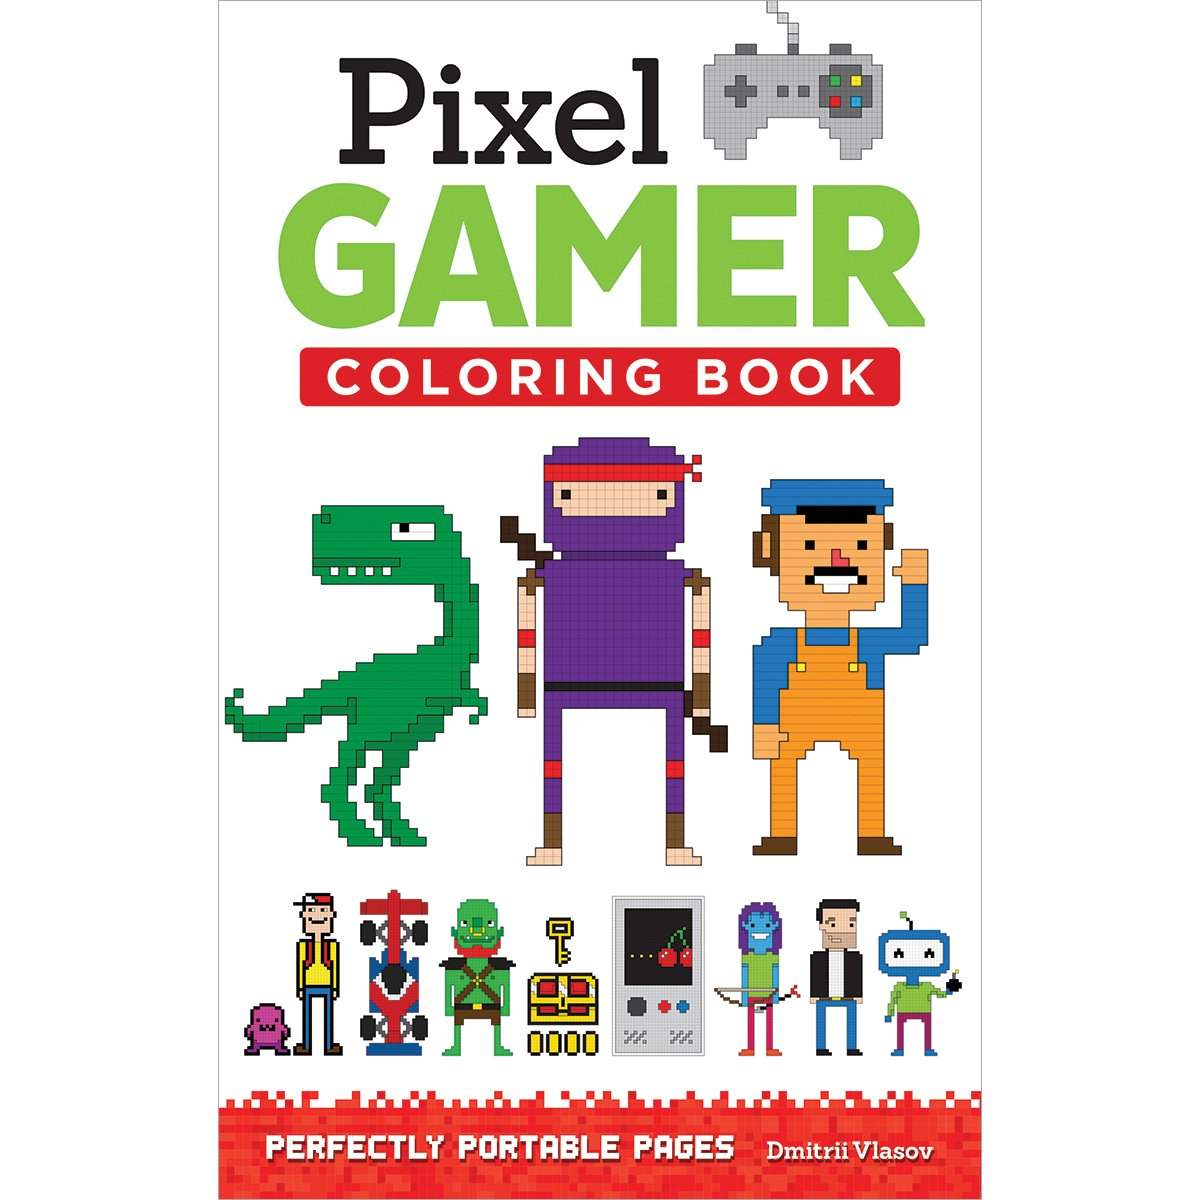 pixel gamer coloring book perfectly portable pages on the go dmitrii vlasov 9781497200425 amazoncom books